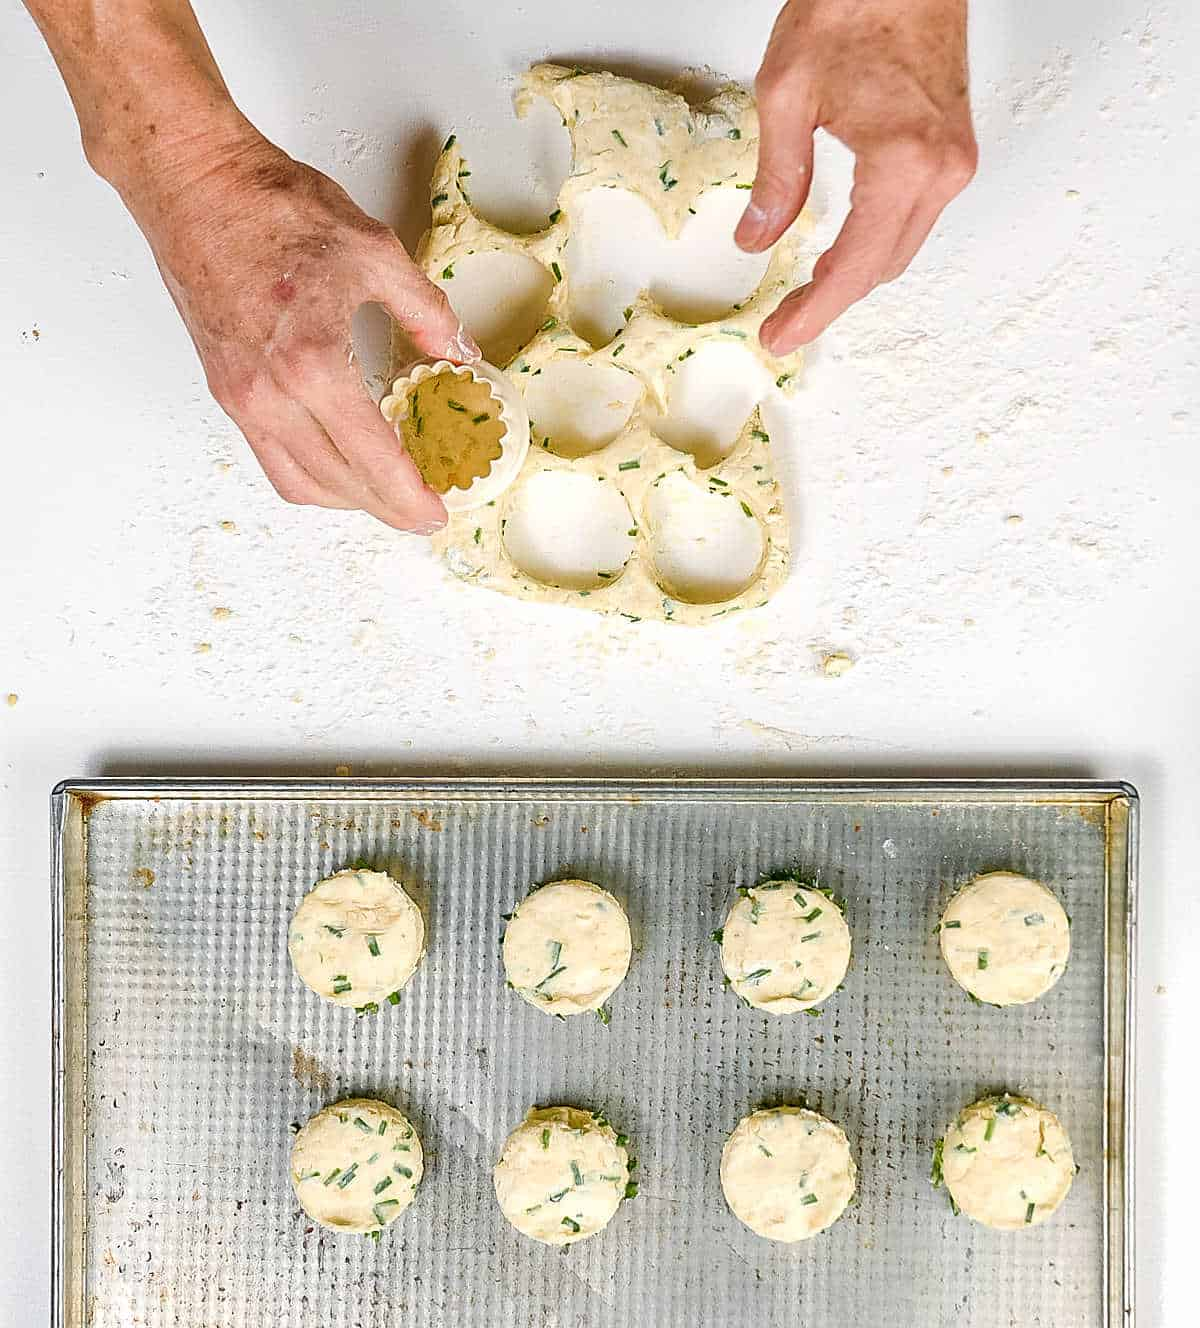 Top view of hand cutting scones and more on metal tray, white surface